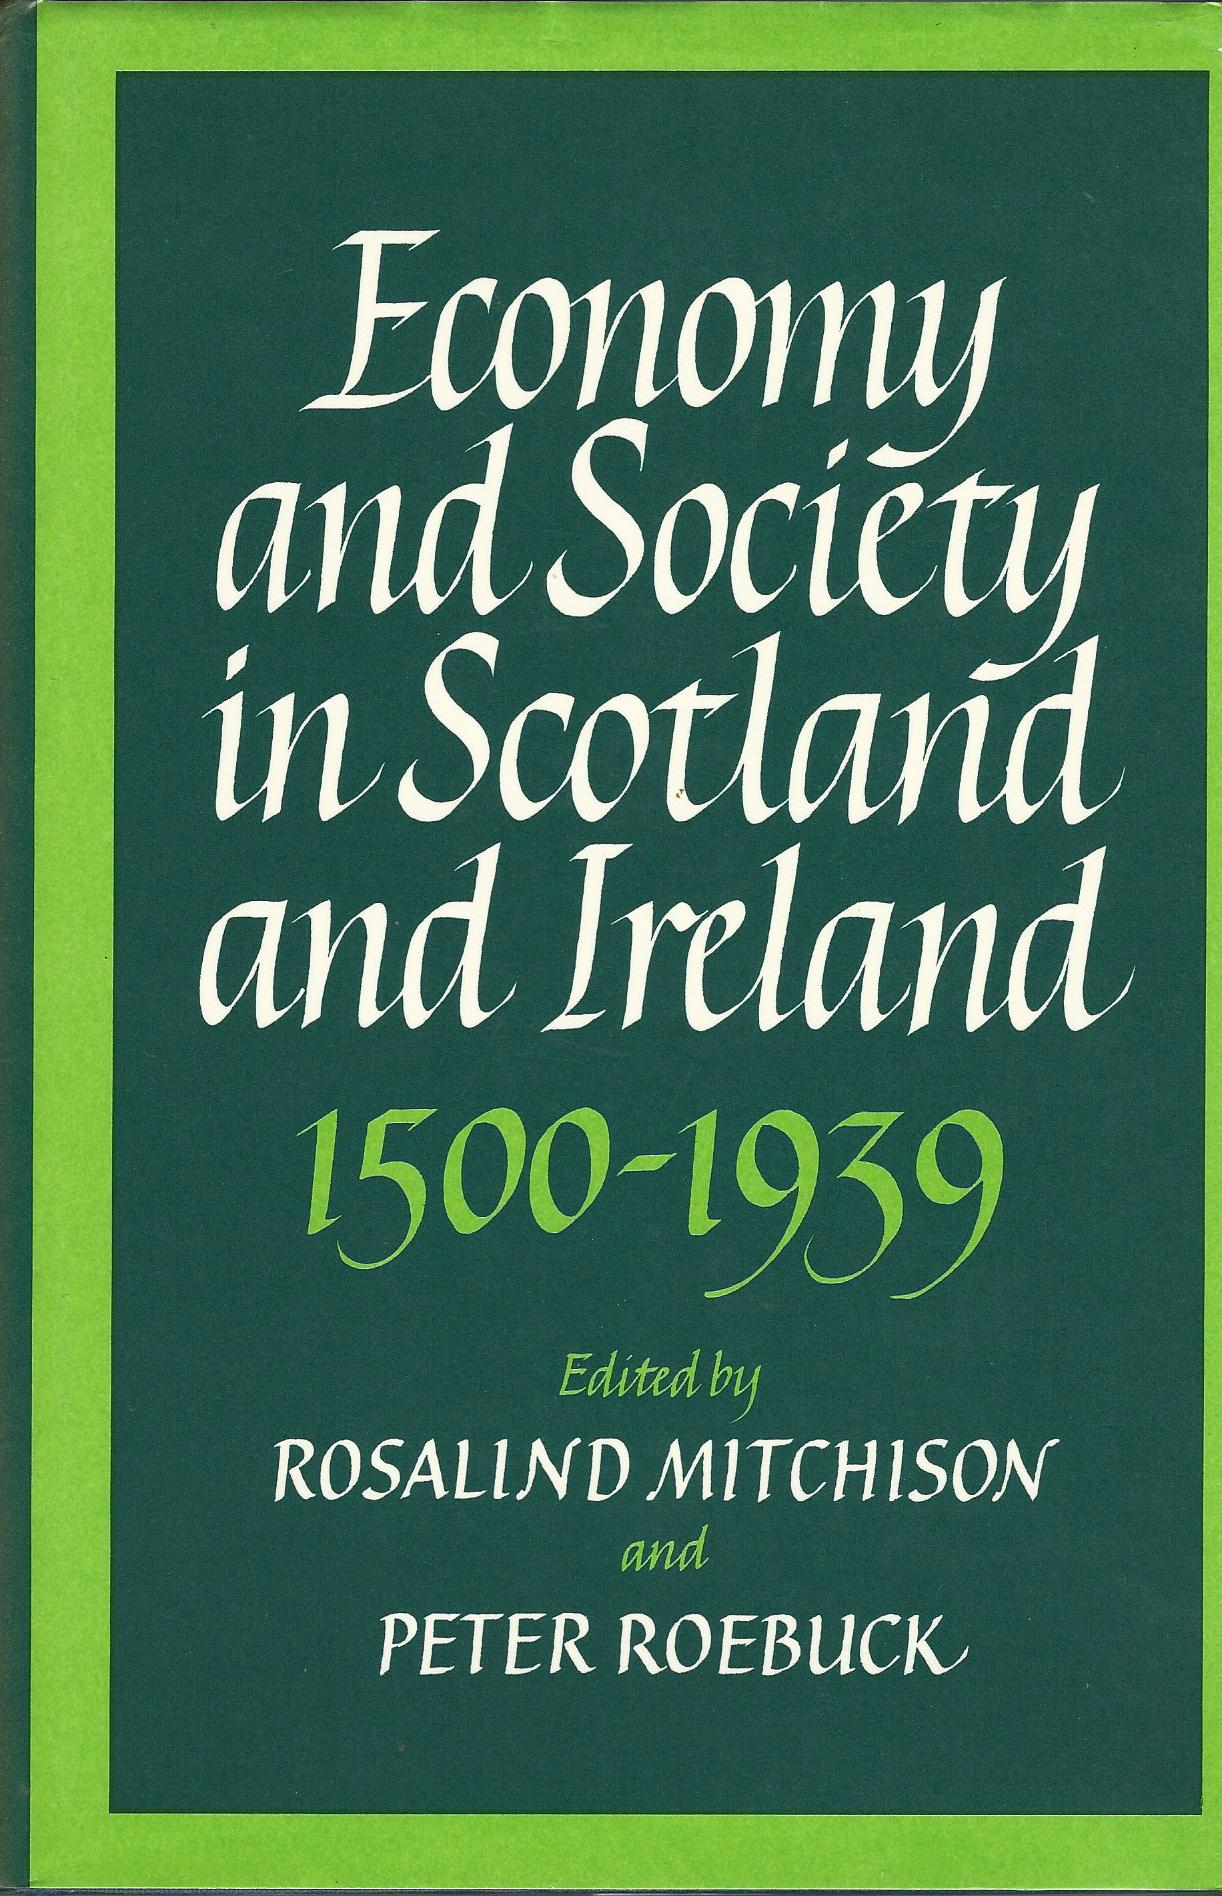 Image for Economy and Society in Scotland and Ireland, 1500-1939.